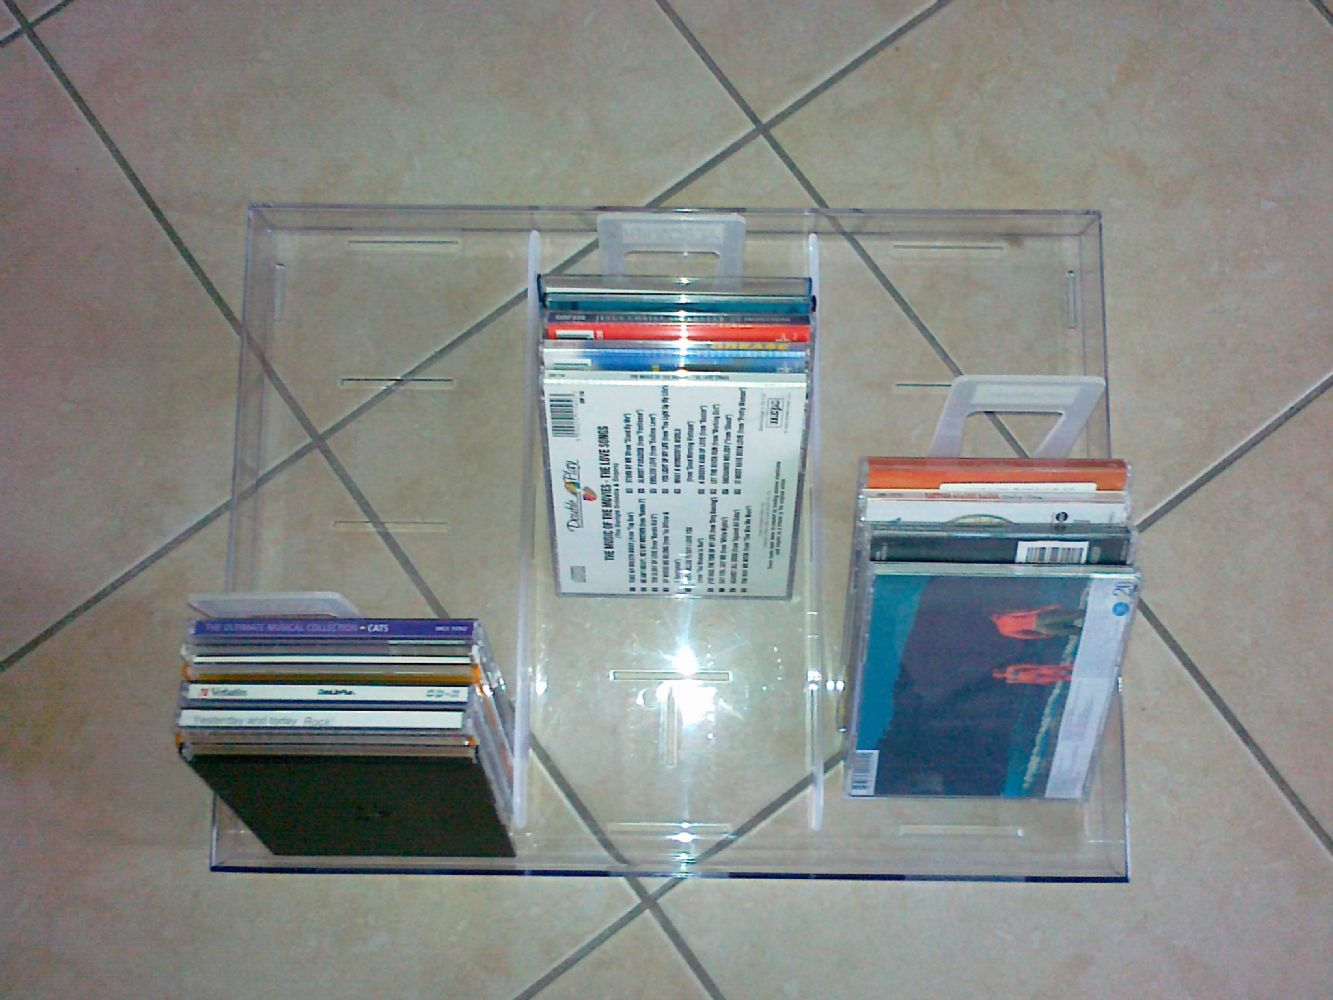 Baratto scambio ikea porta cd dvd arredamento - Ikea porta cd billy ...